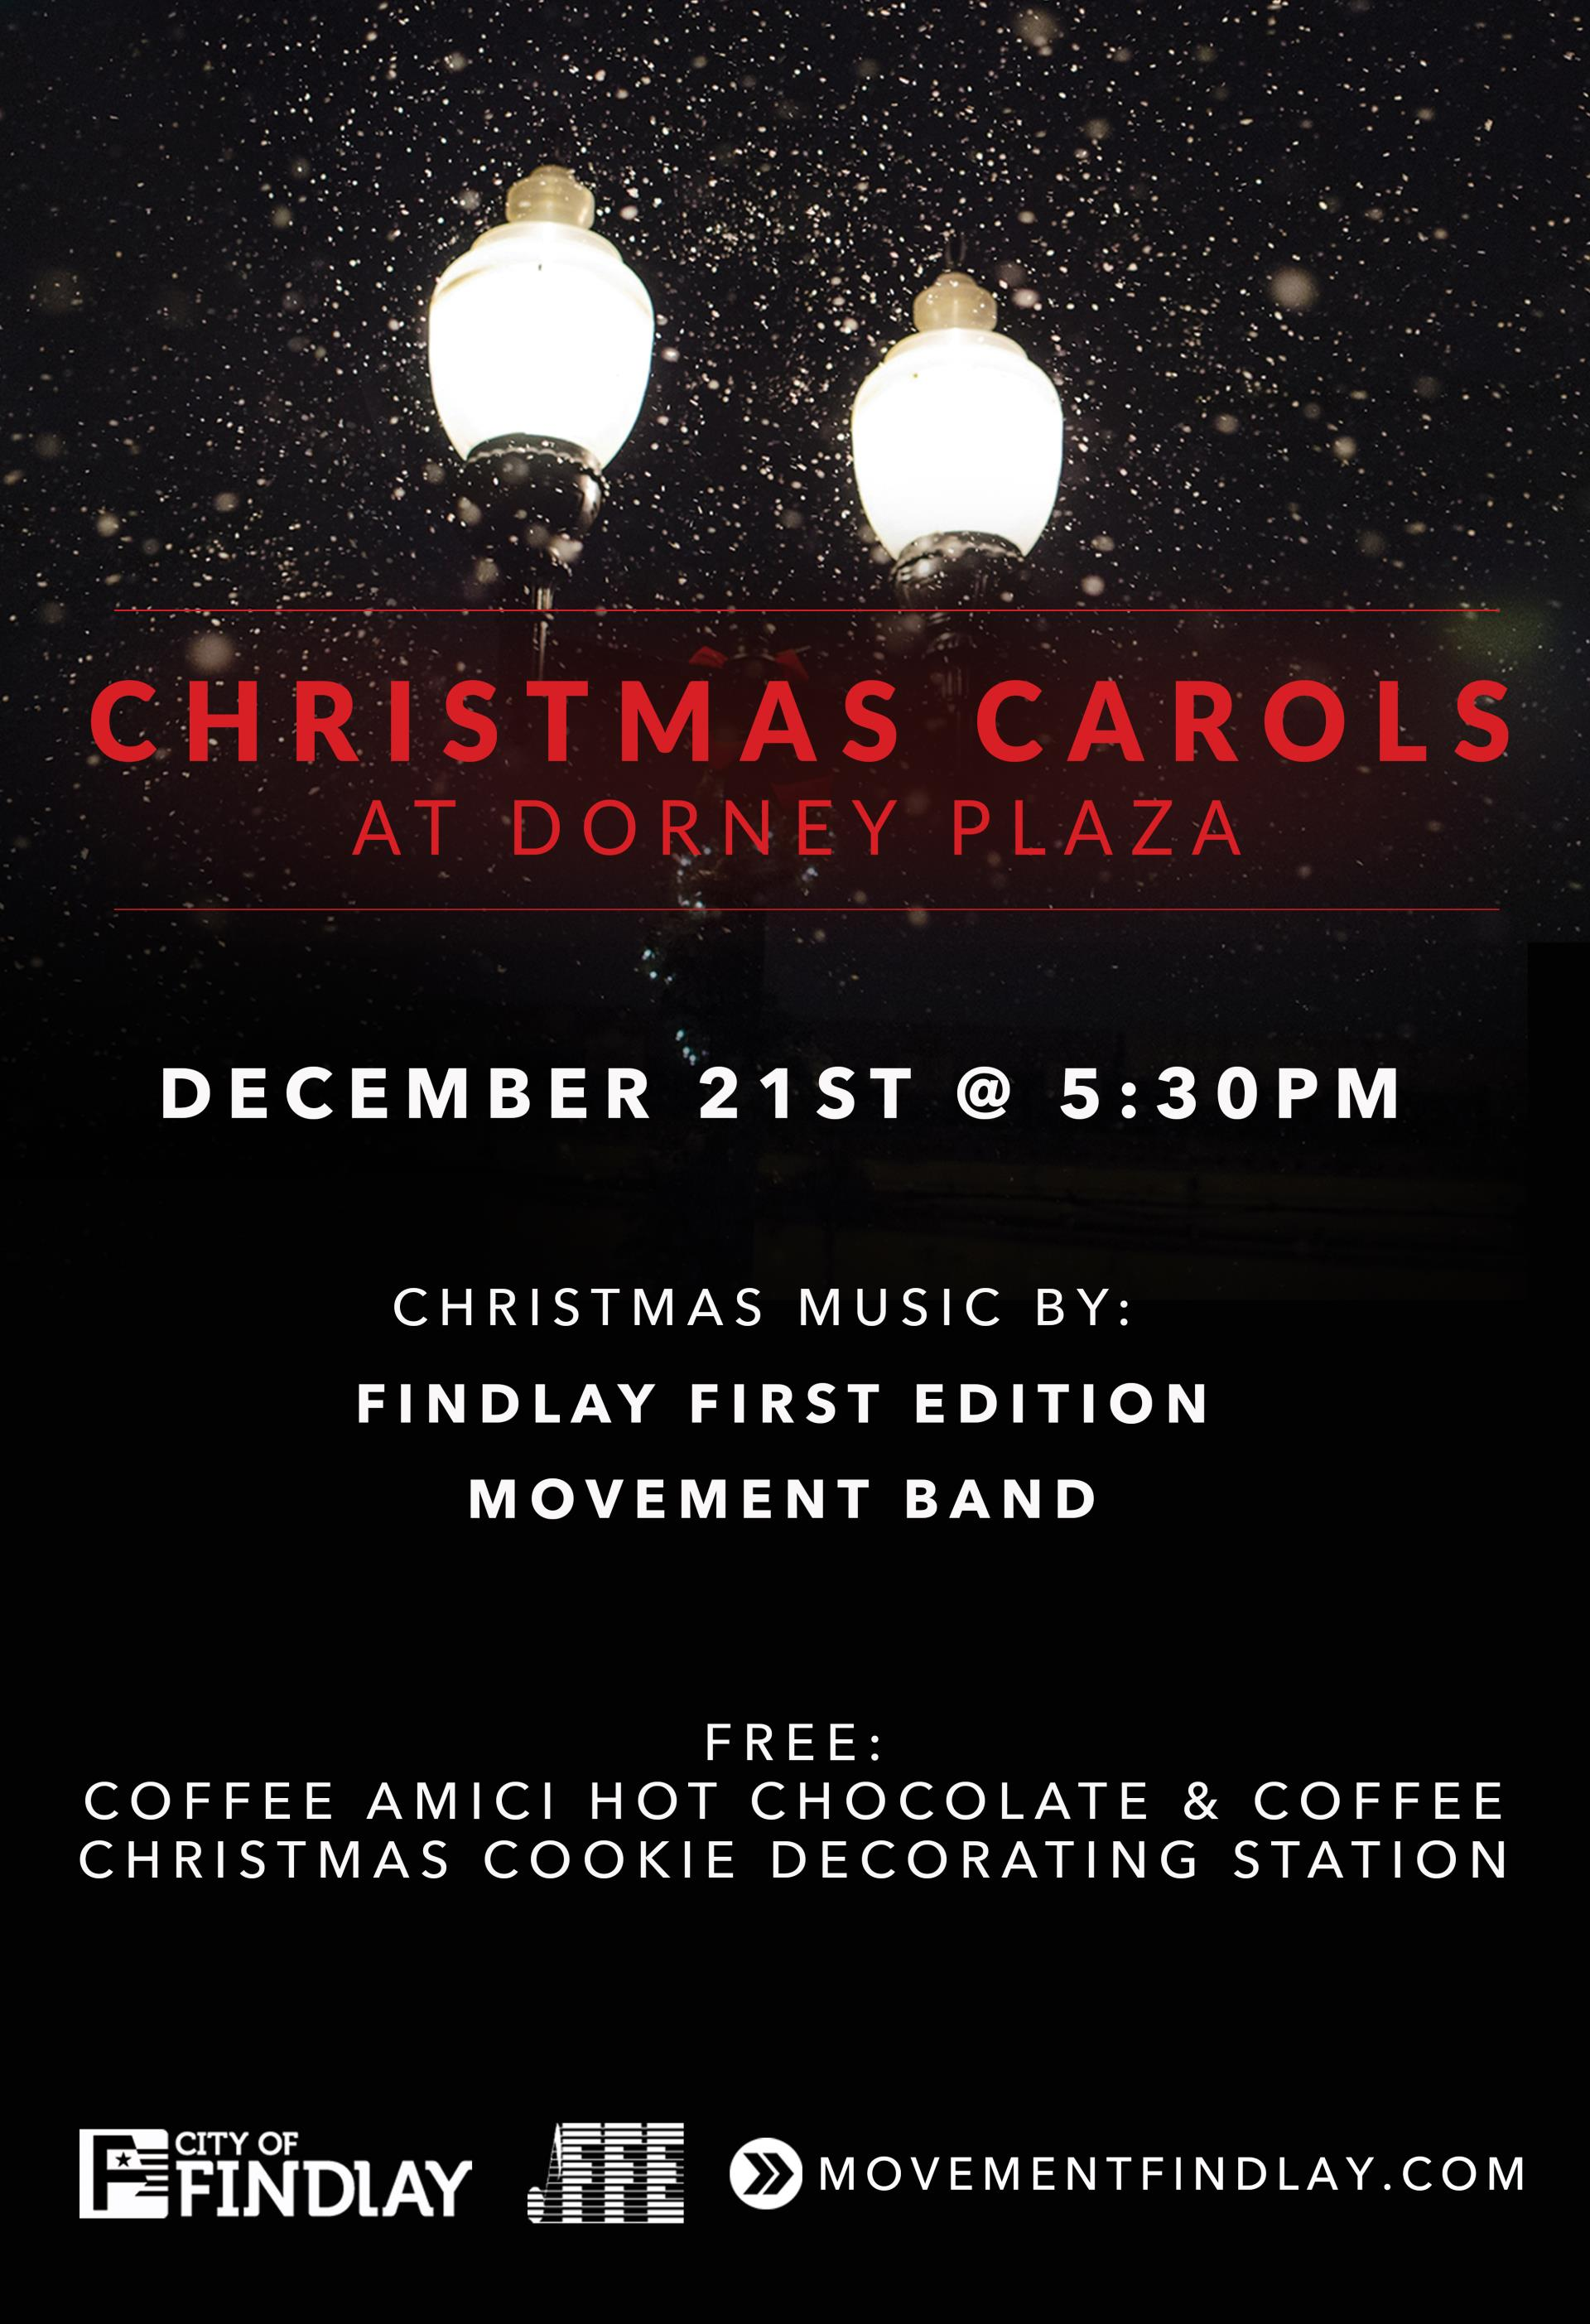 christmas caroling in dorney plaza